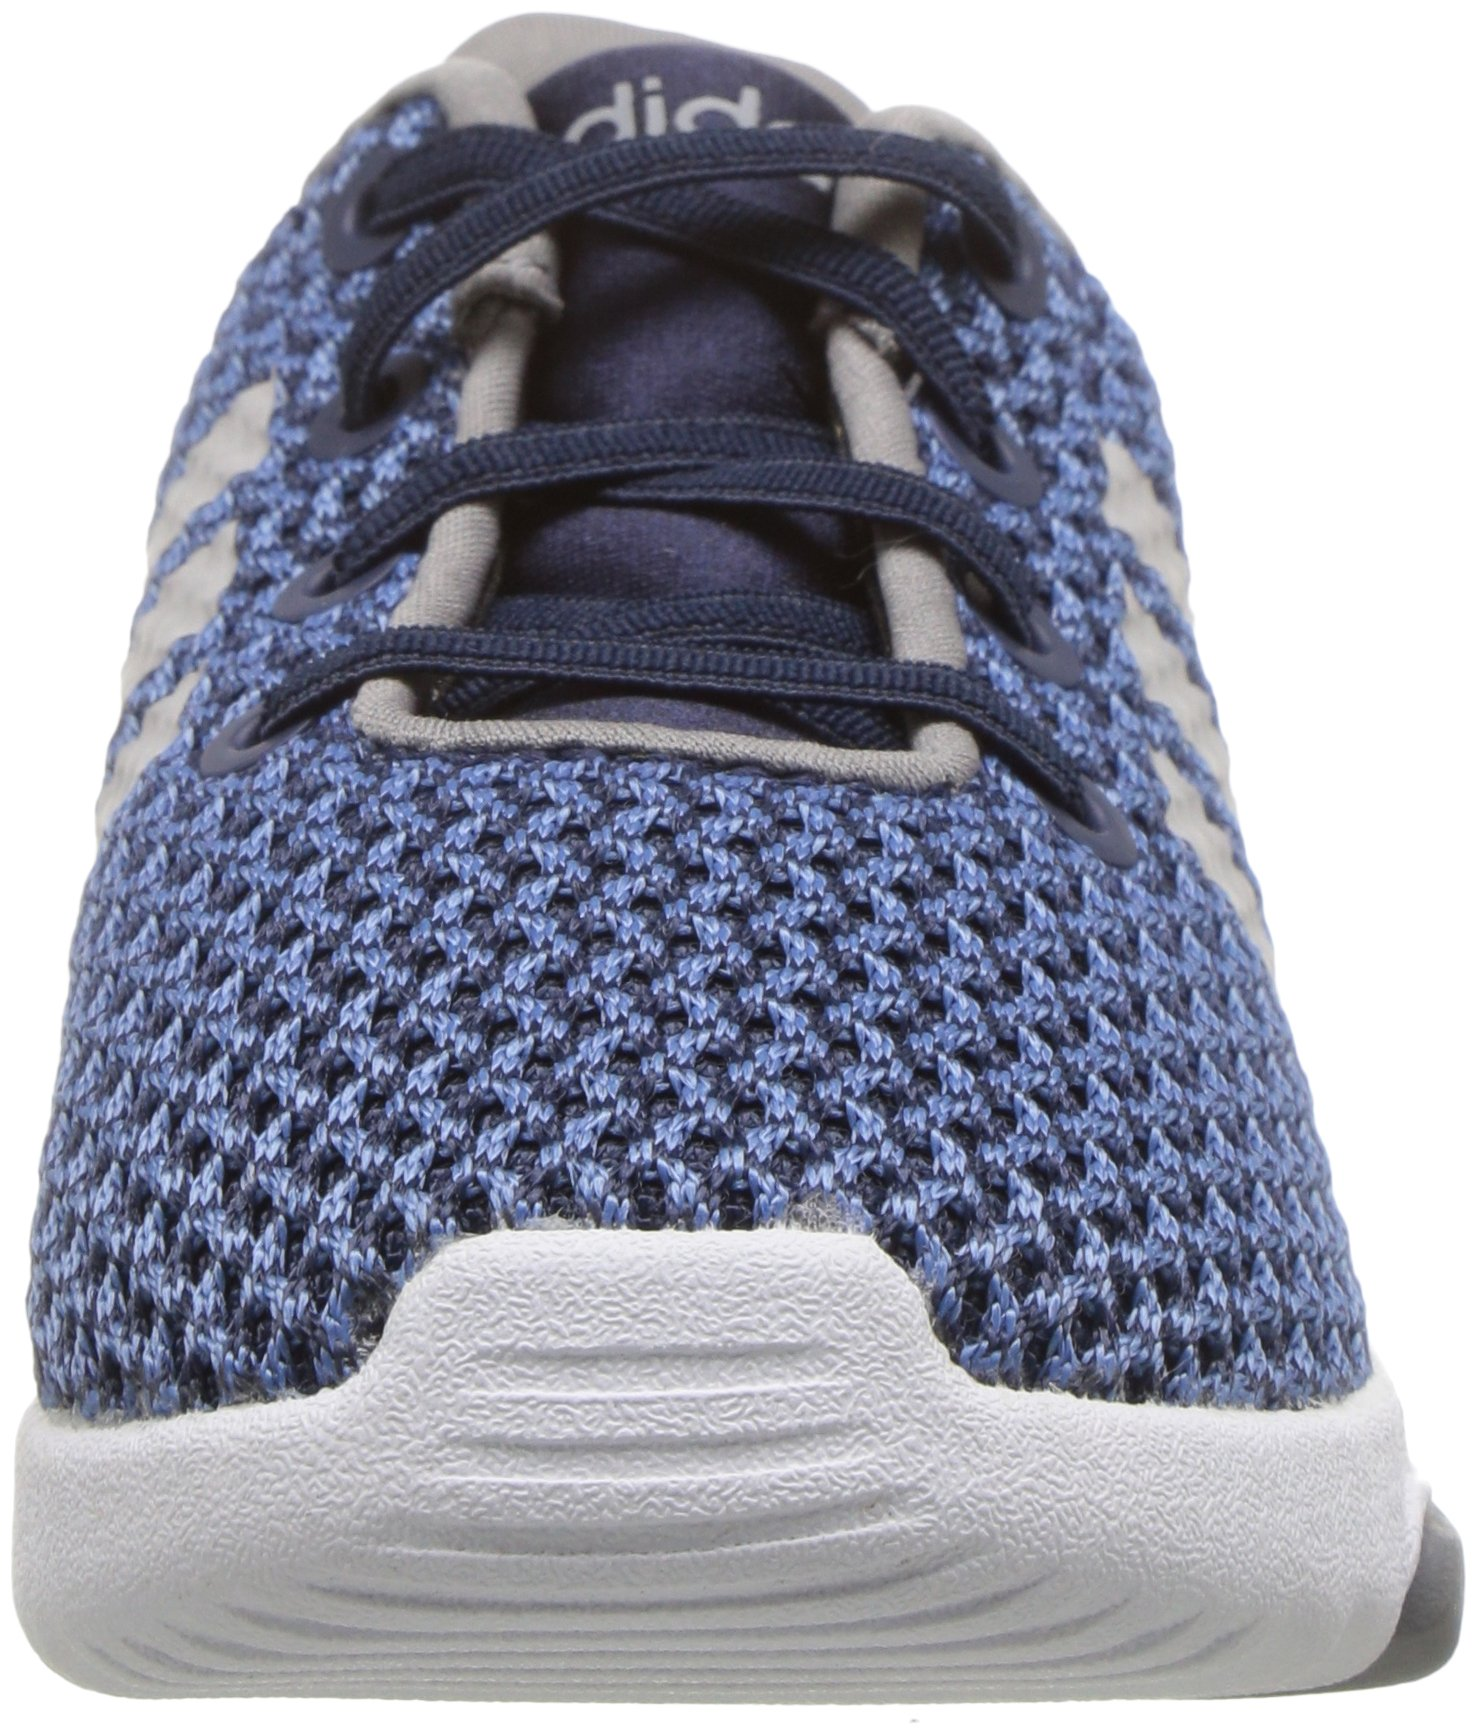 adidas Kids CF Racer TR Running Shoe, Collegiate Navy/Collegiate Navy/Grey, 3K M US Toddler by adidas (Image #4)